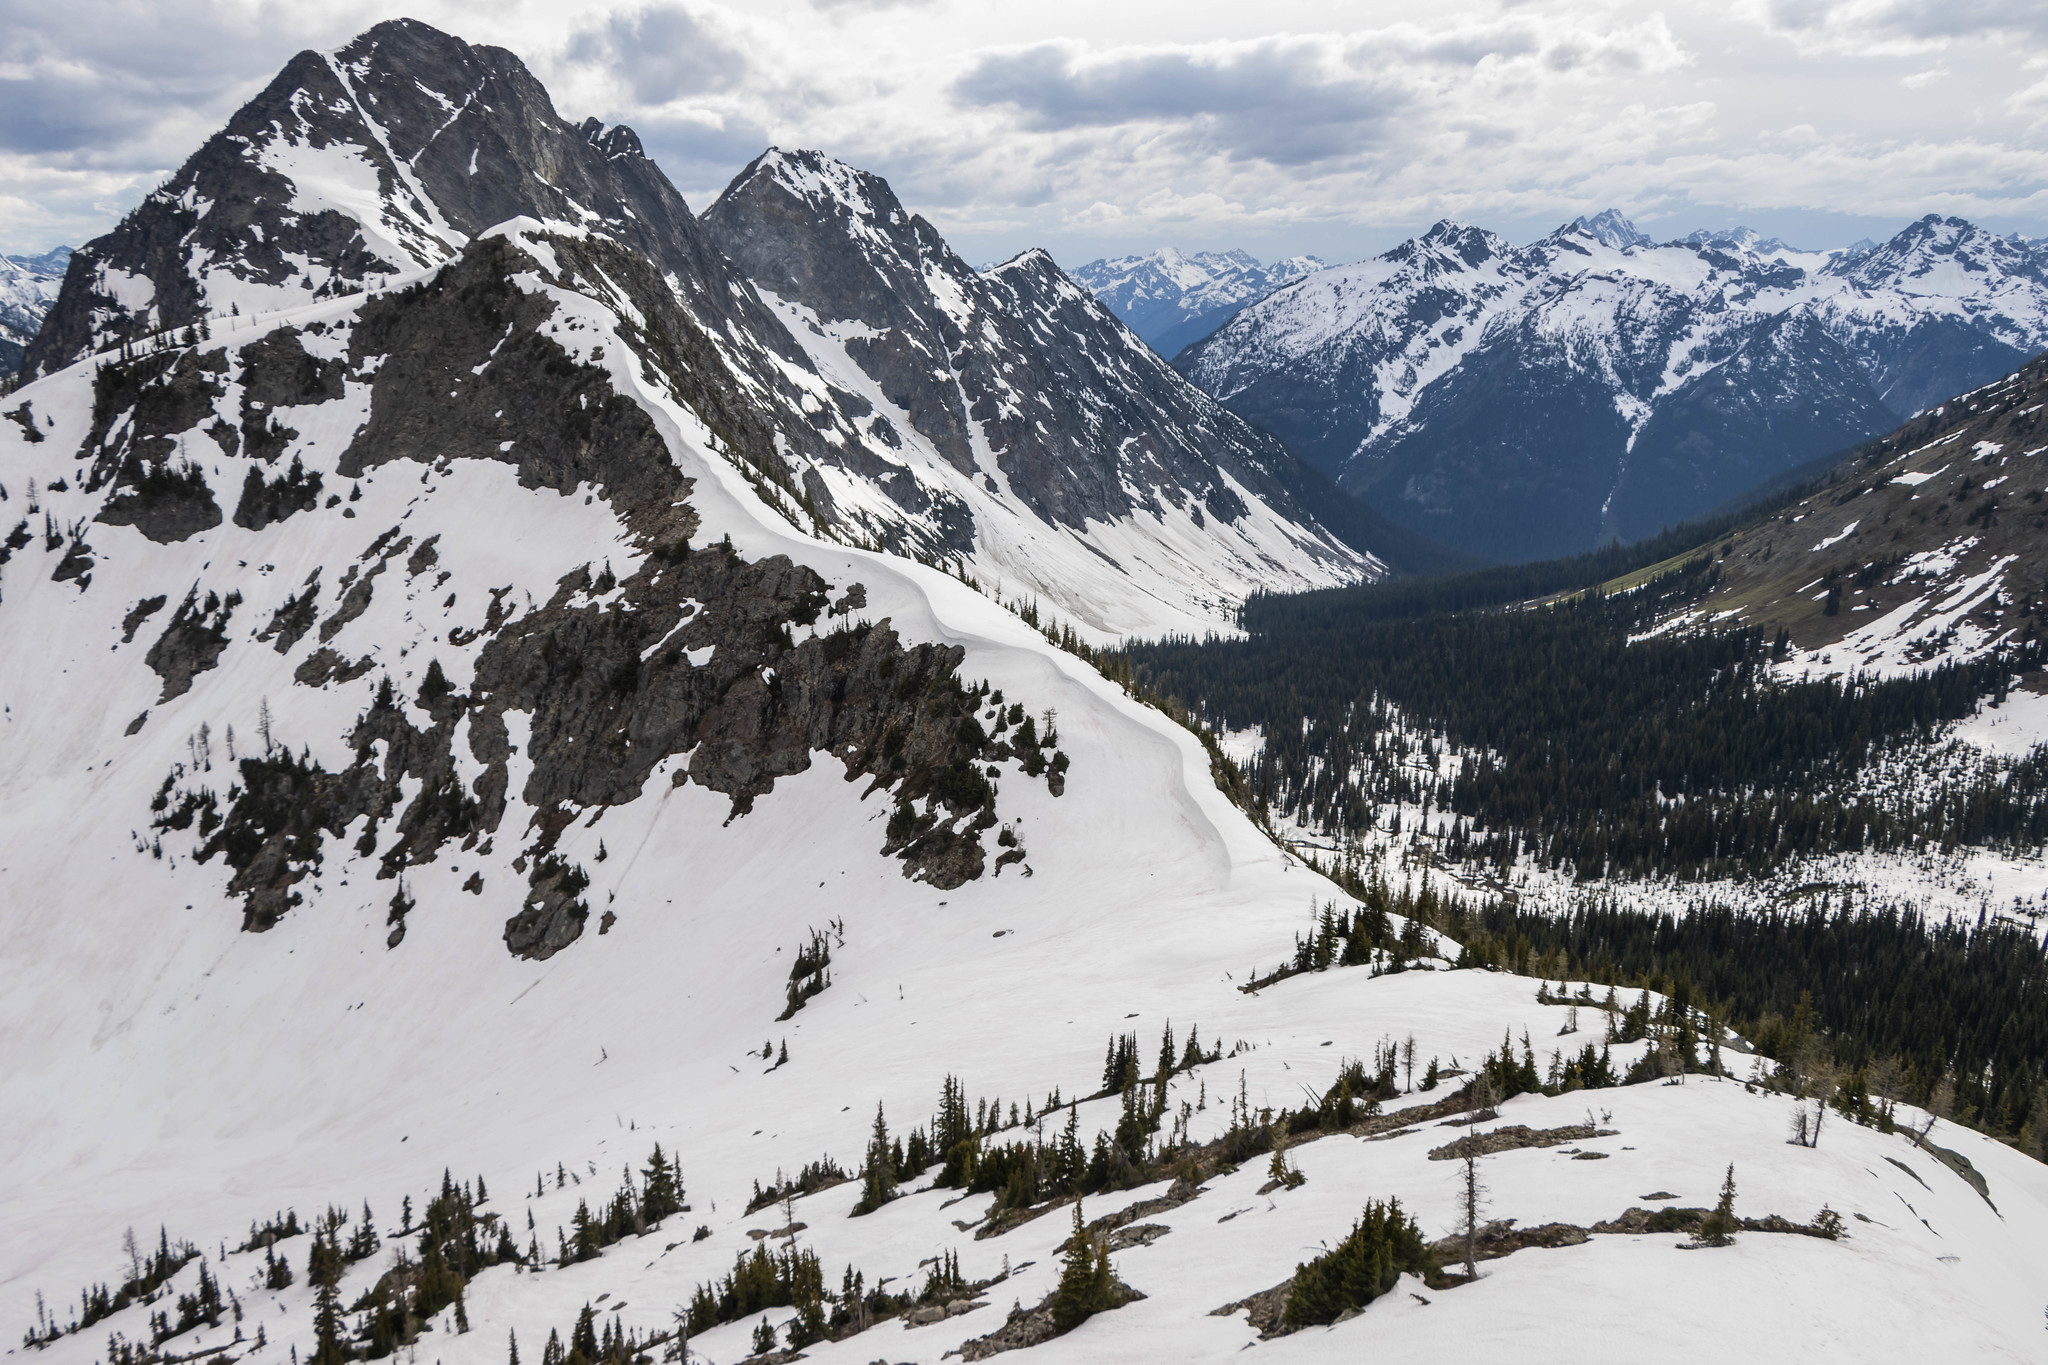 Looking back at Copper Pass and Switchblade Peak